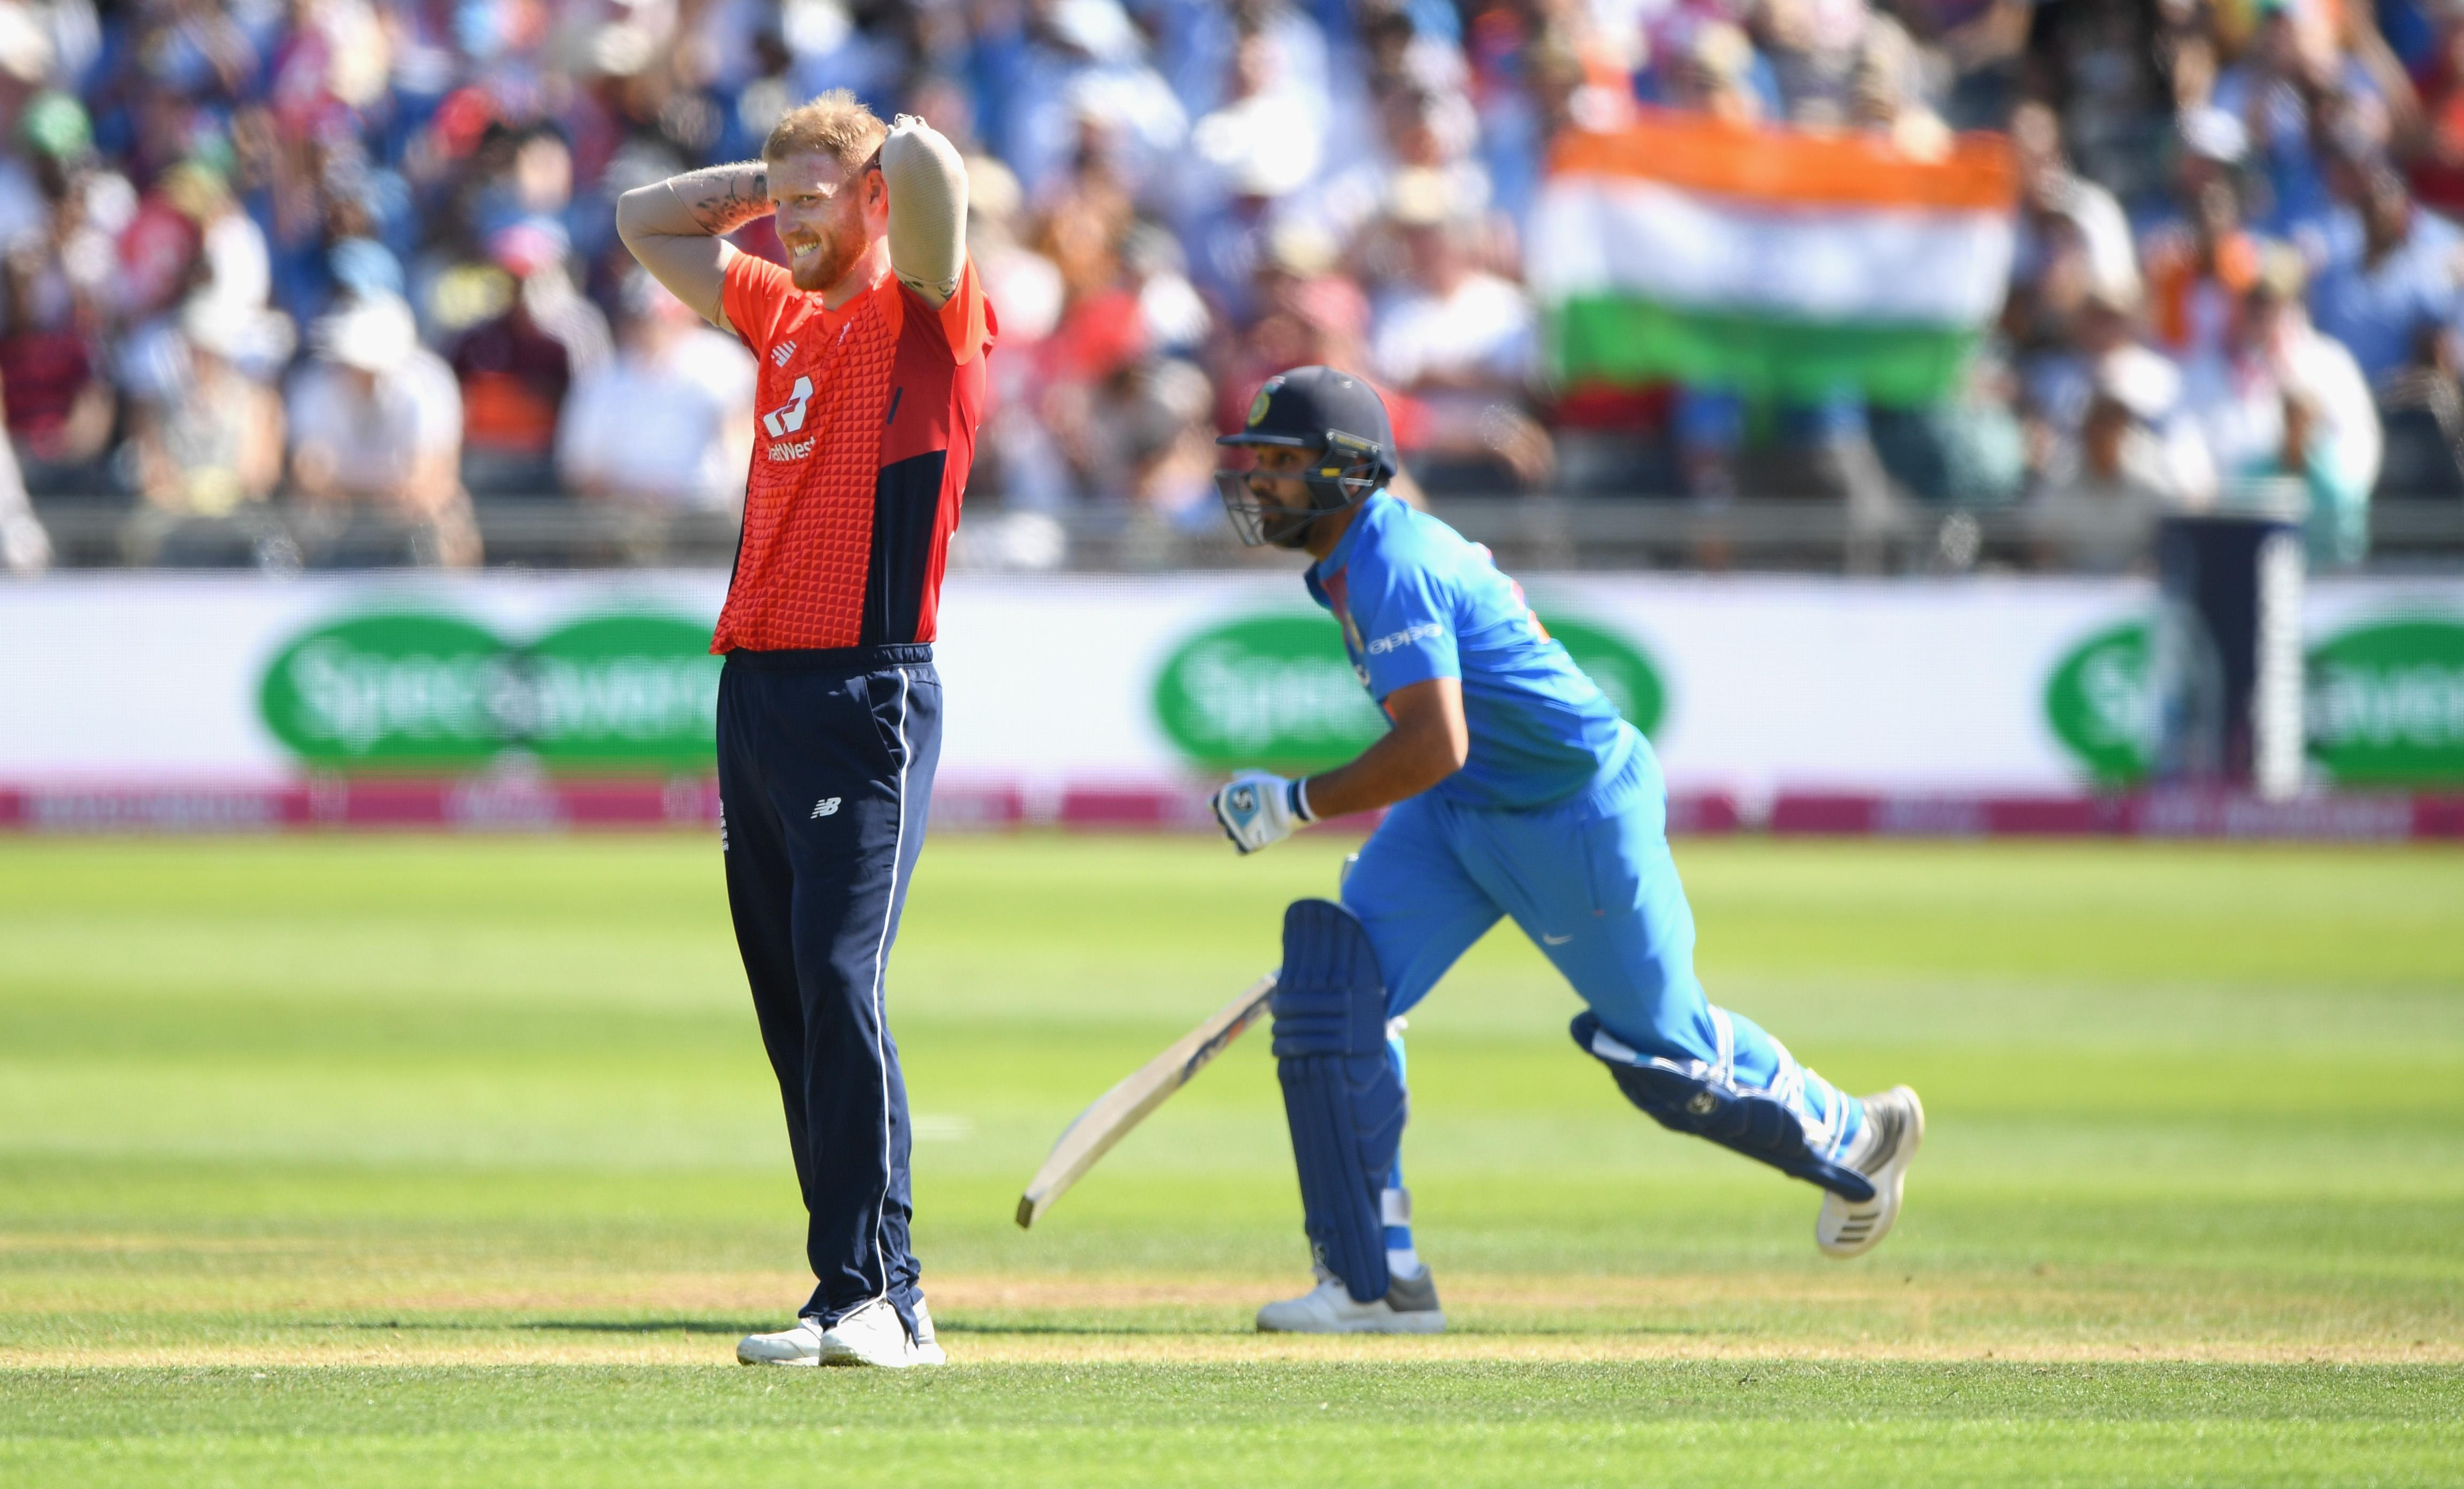 England fell to series defeat against India with a loss in Sunday's third T20